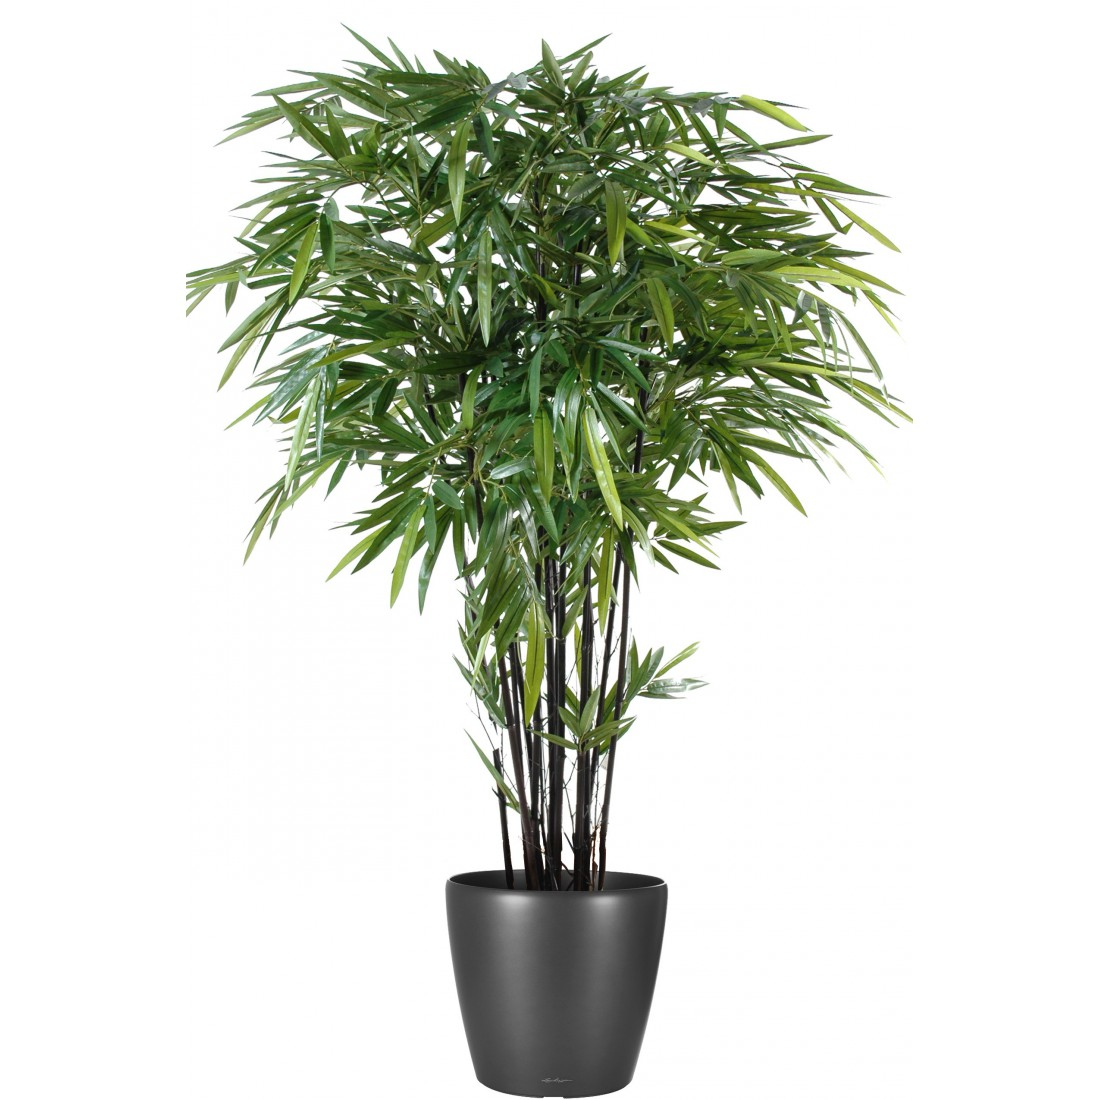 Pot plante tube paul atylia accessoires d co for Bambous artificiels exterieur